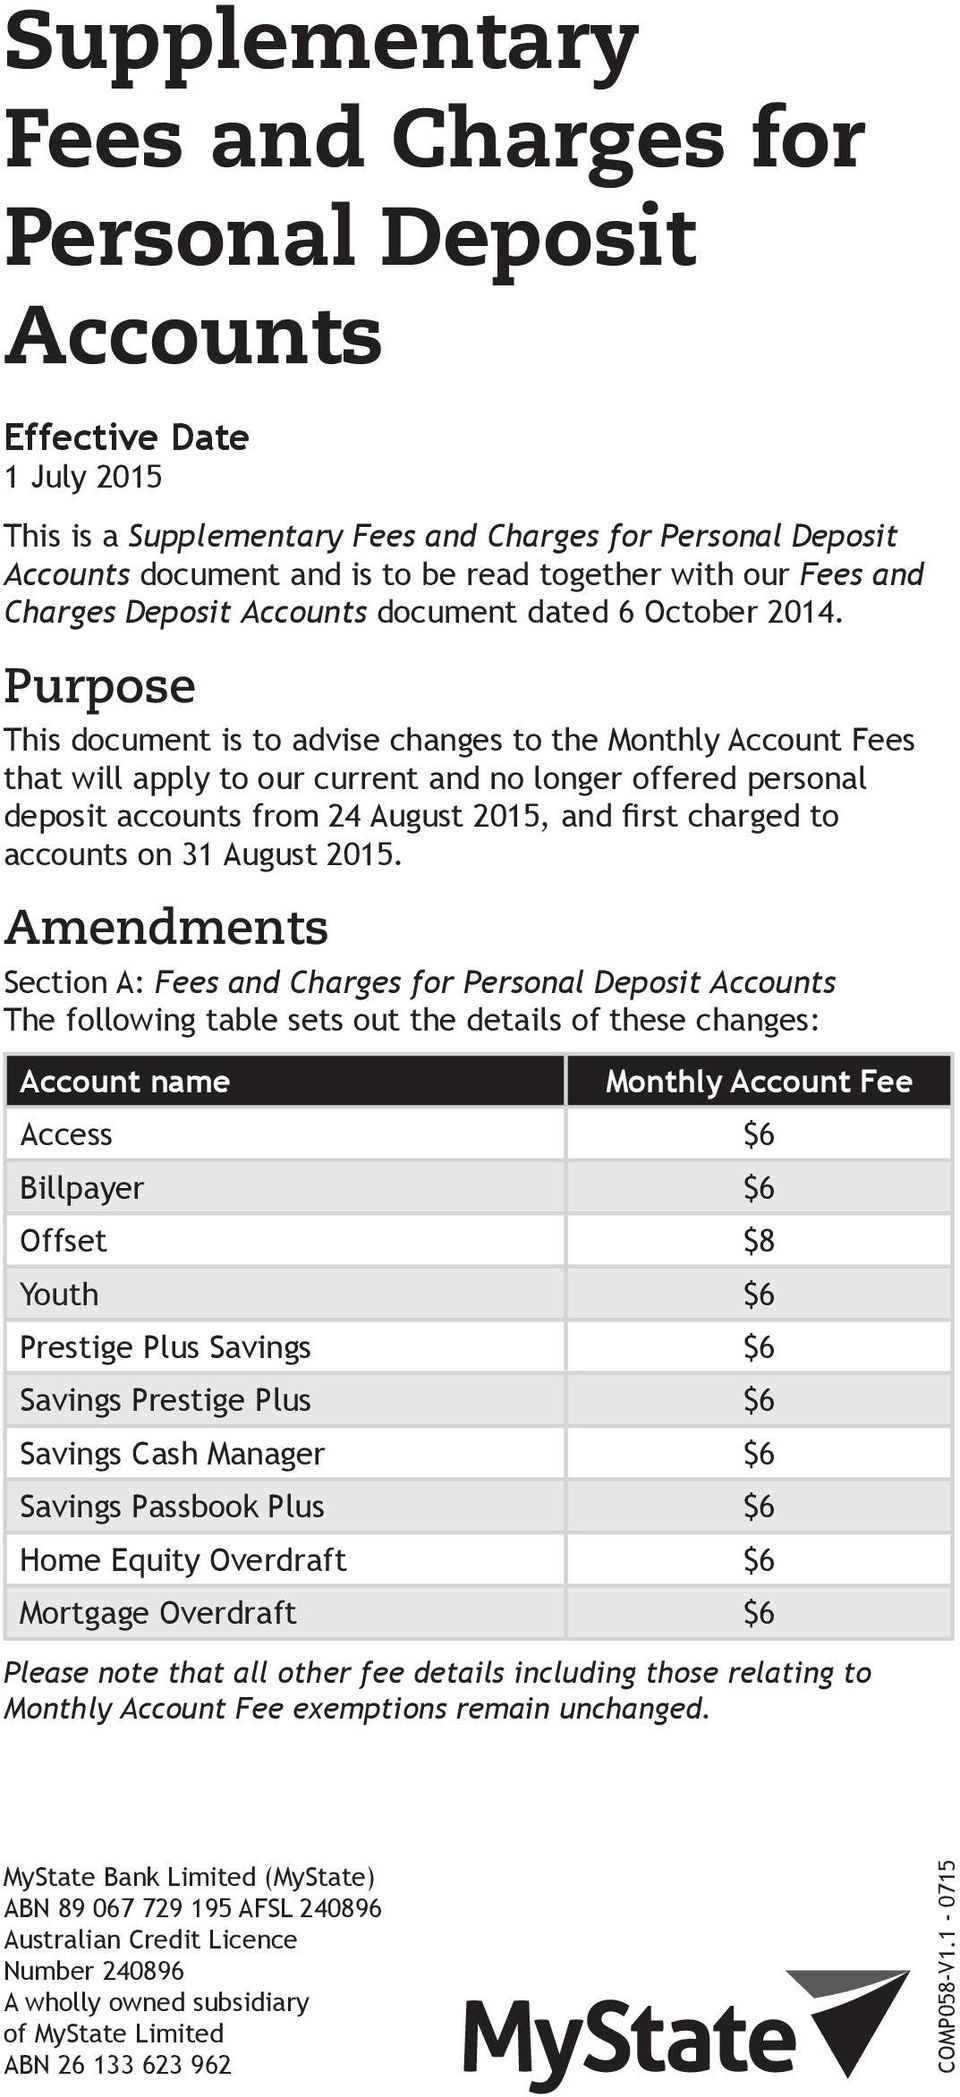 Purpose This document is to advise changes to the Monthly Fees that will apply to our current and no longer offered personal deposit accounts from 24 August 2015, and first charged to accounts on 31